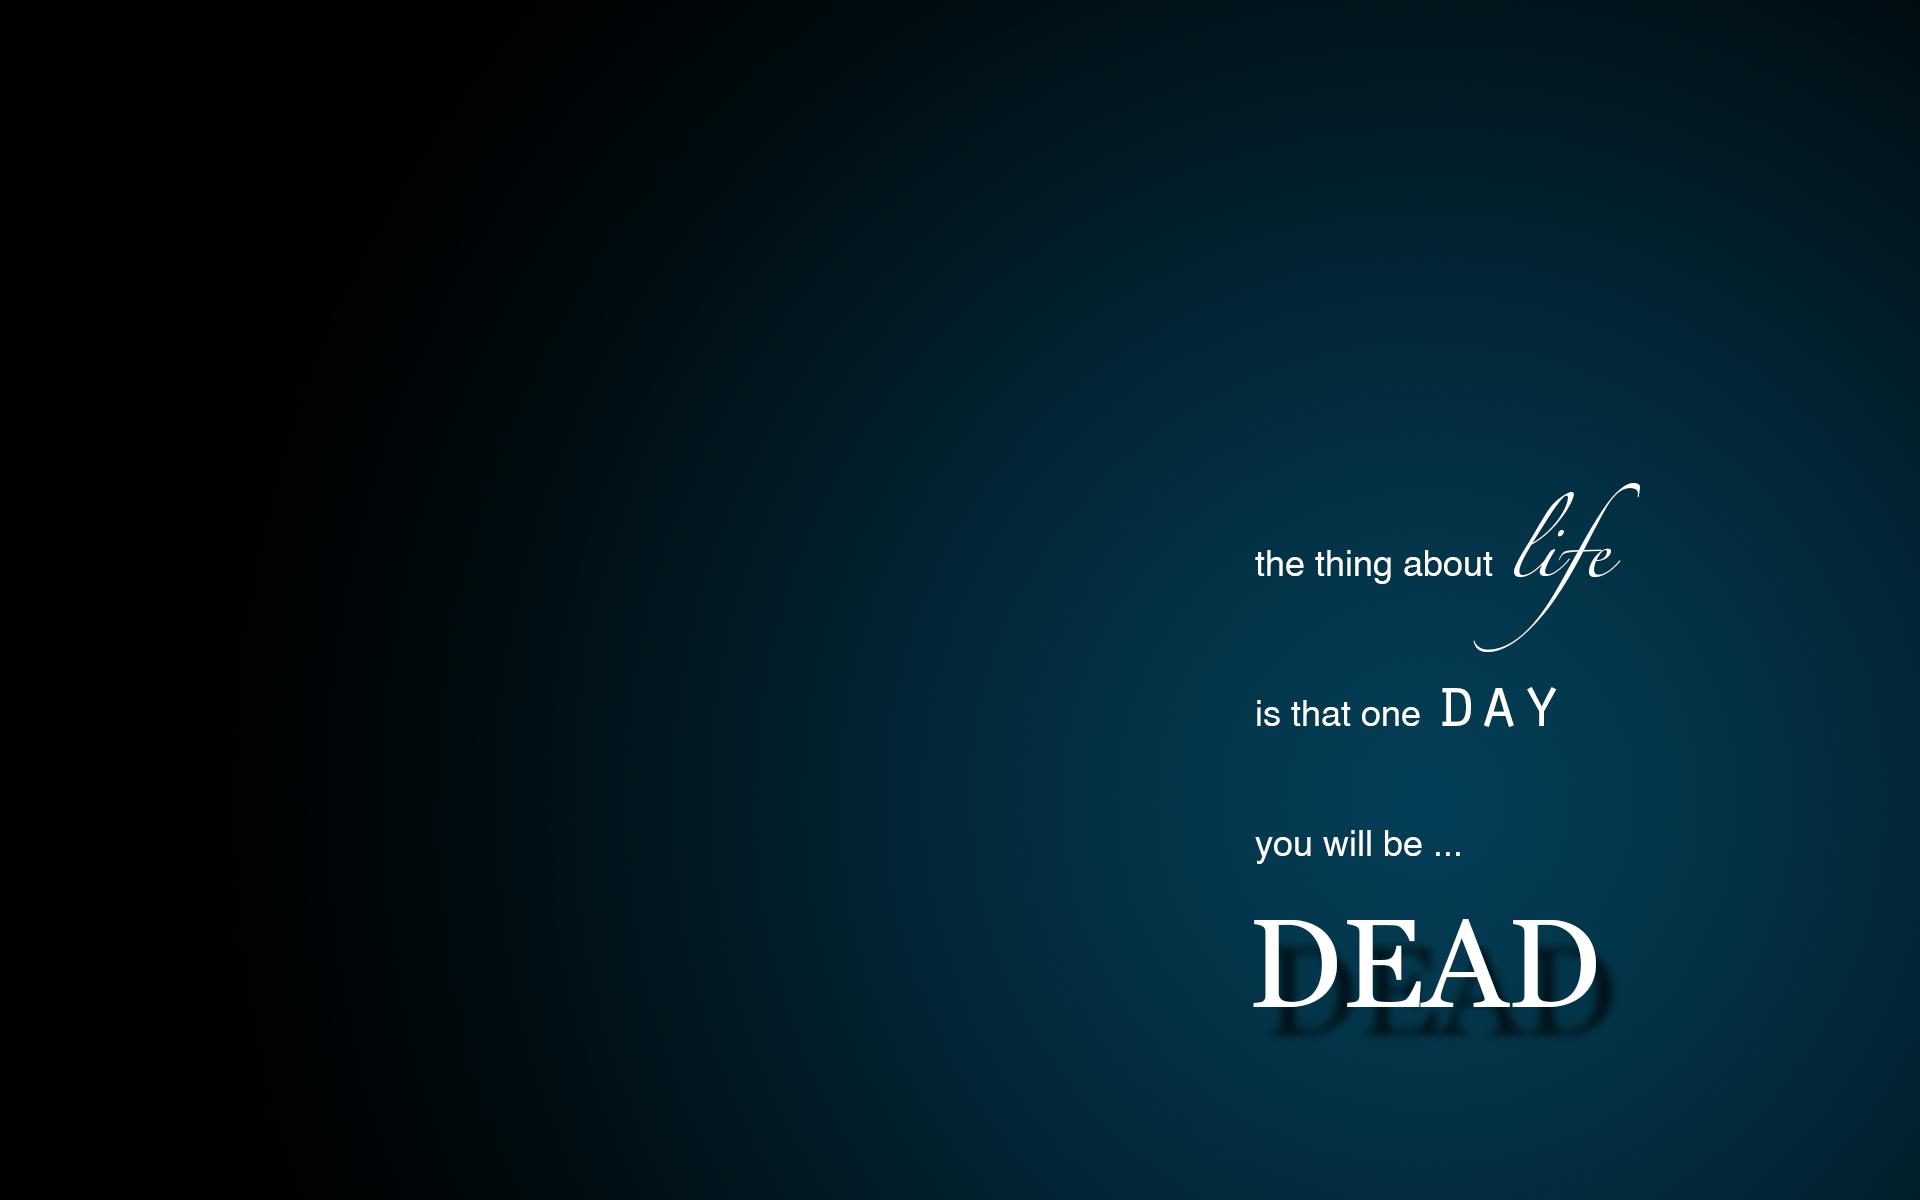 Cool Wallpapers With Quotes About Life